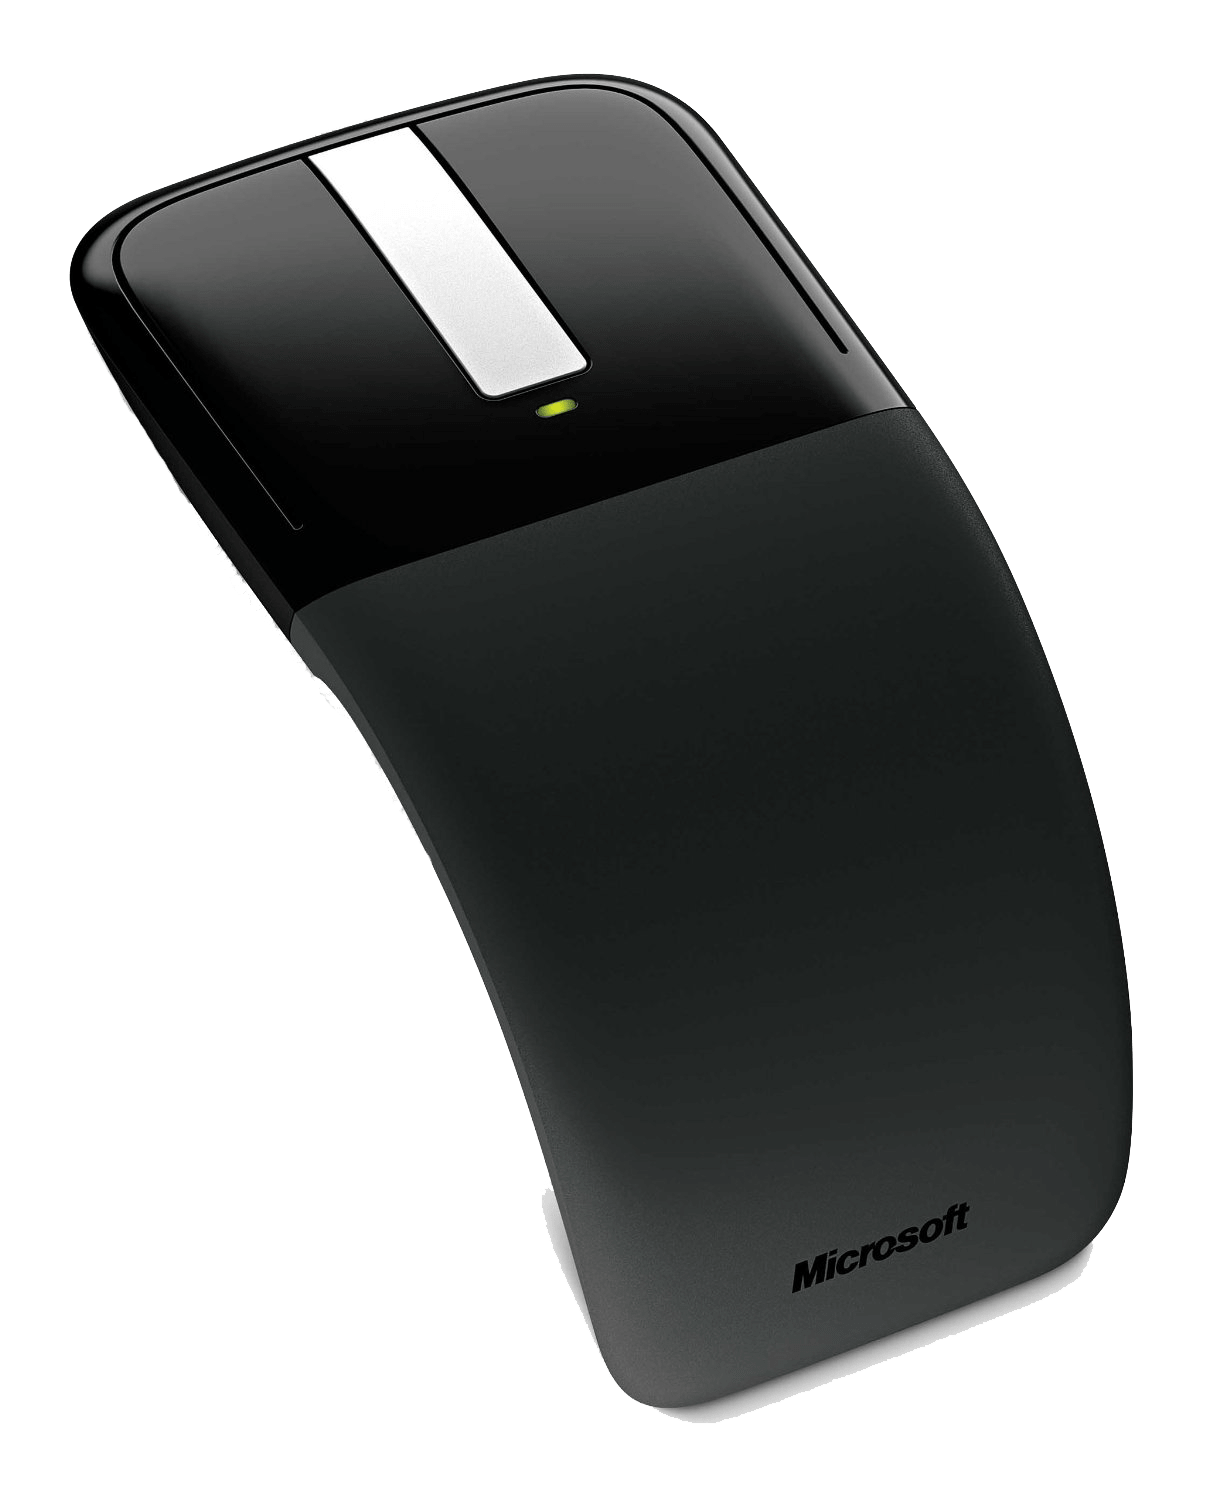 Curved mouse can be an option for employees with disabilities.